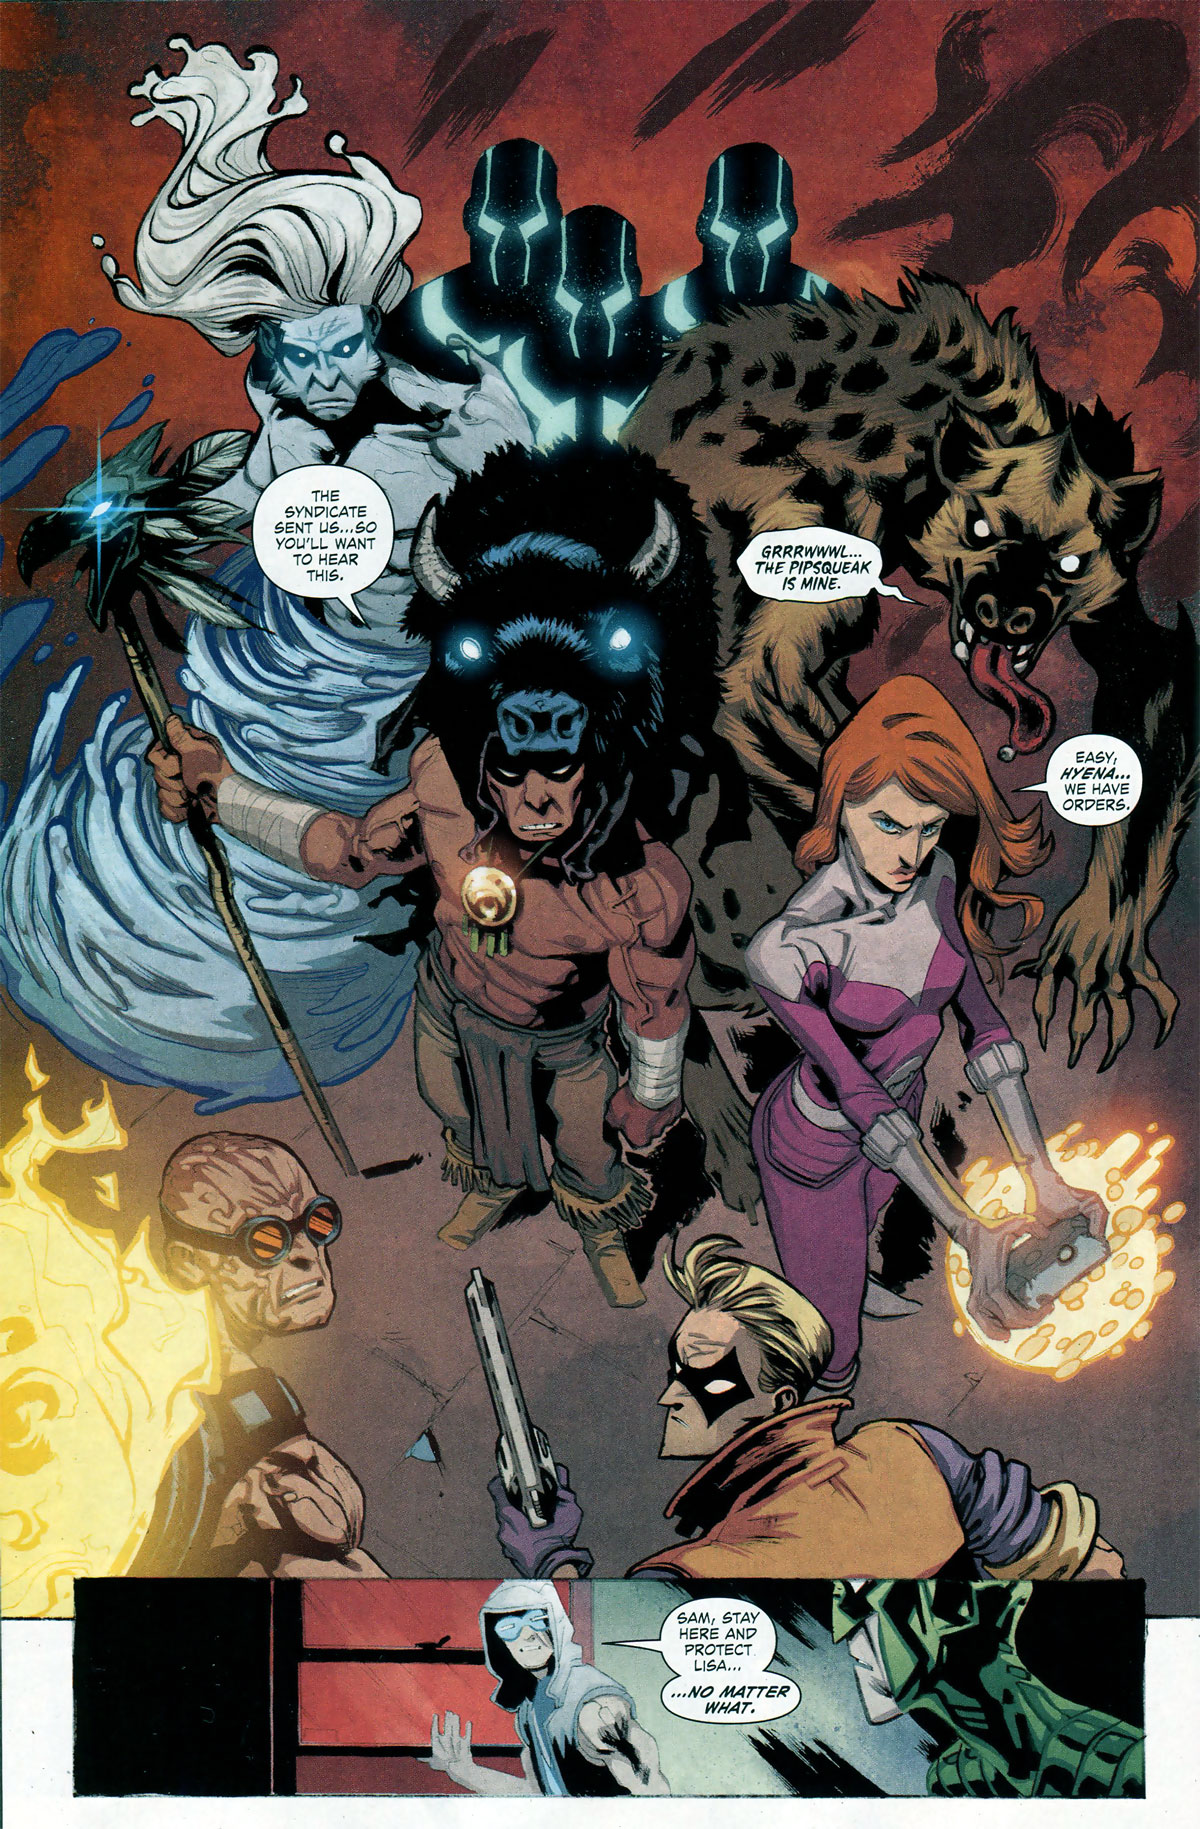 Forever Evil Rogues Rebellion #1 by Brian Buccellato, Patrick Zircher, and Scott Hepburn